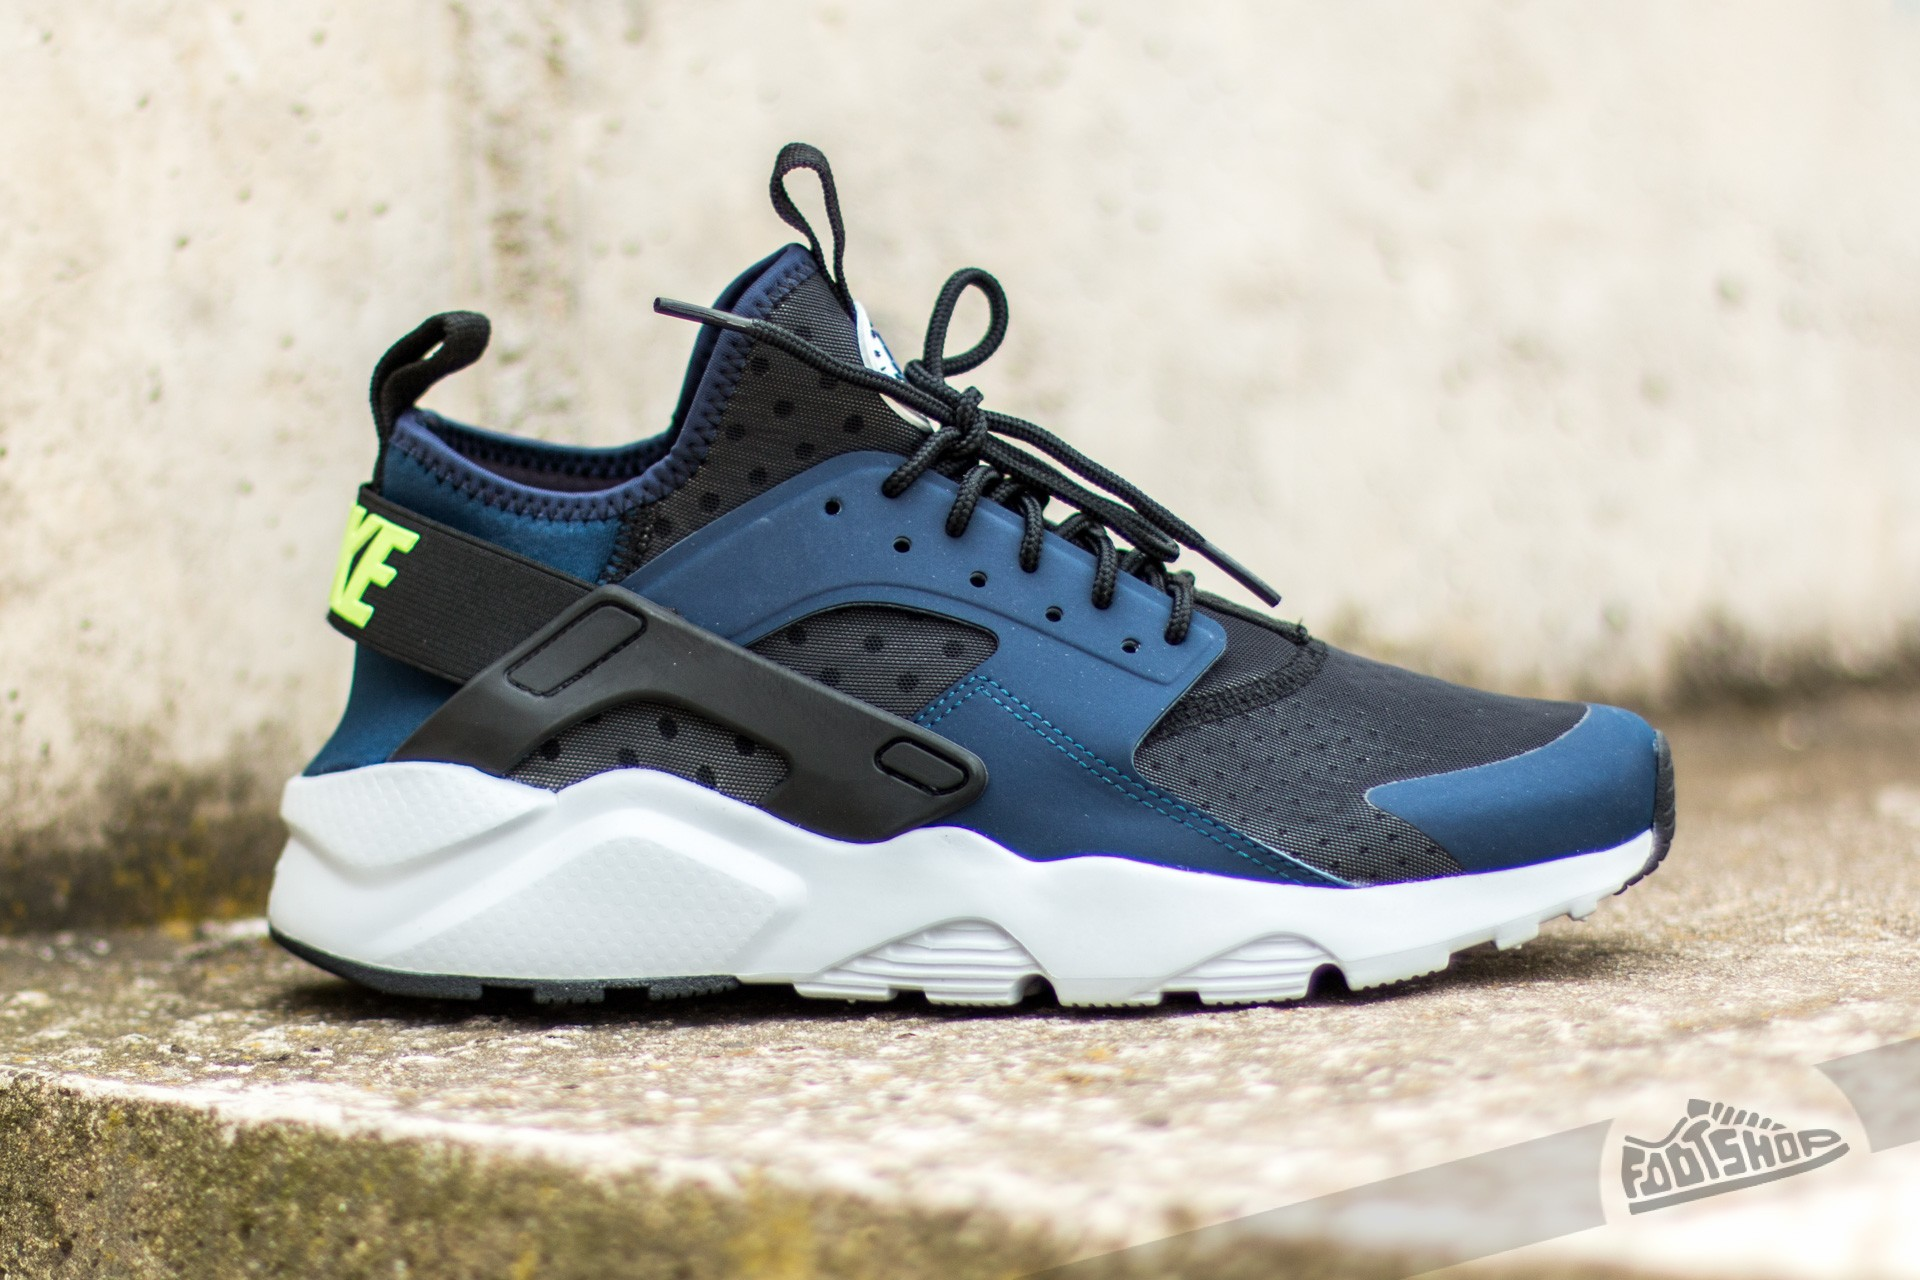 049db023e4d60 ... usa nike air huarache run ultra midnight navy ghost green black pure  platinum 06227 3aba5